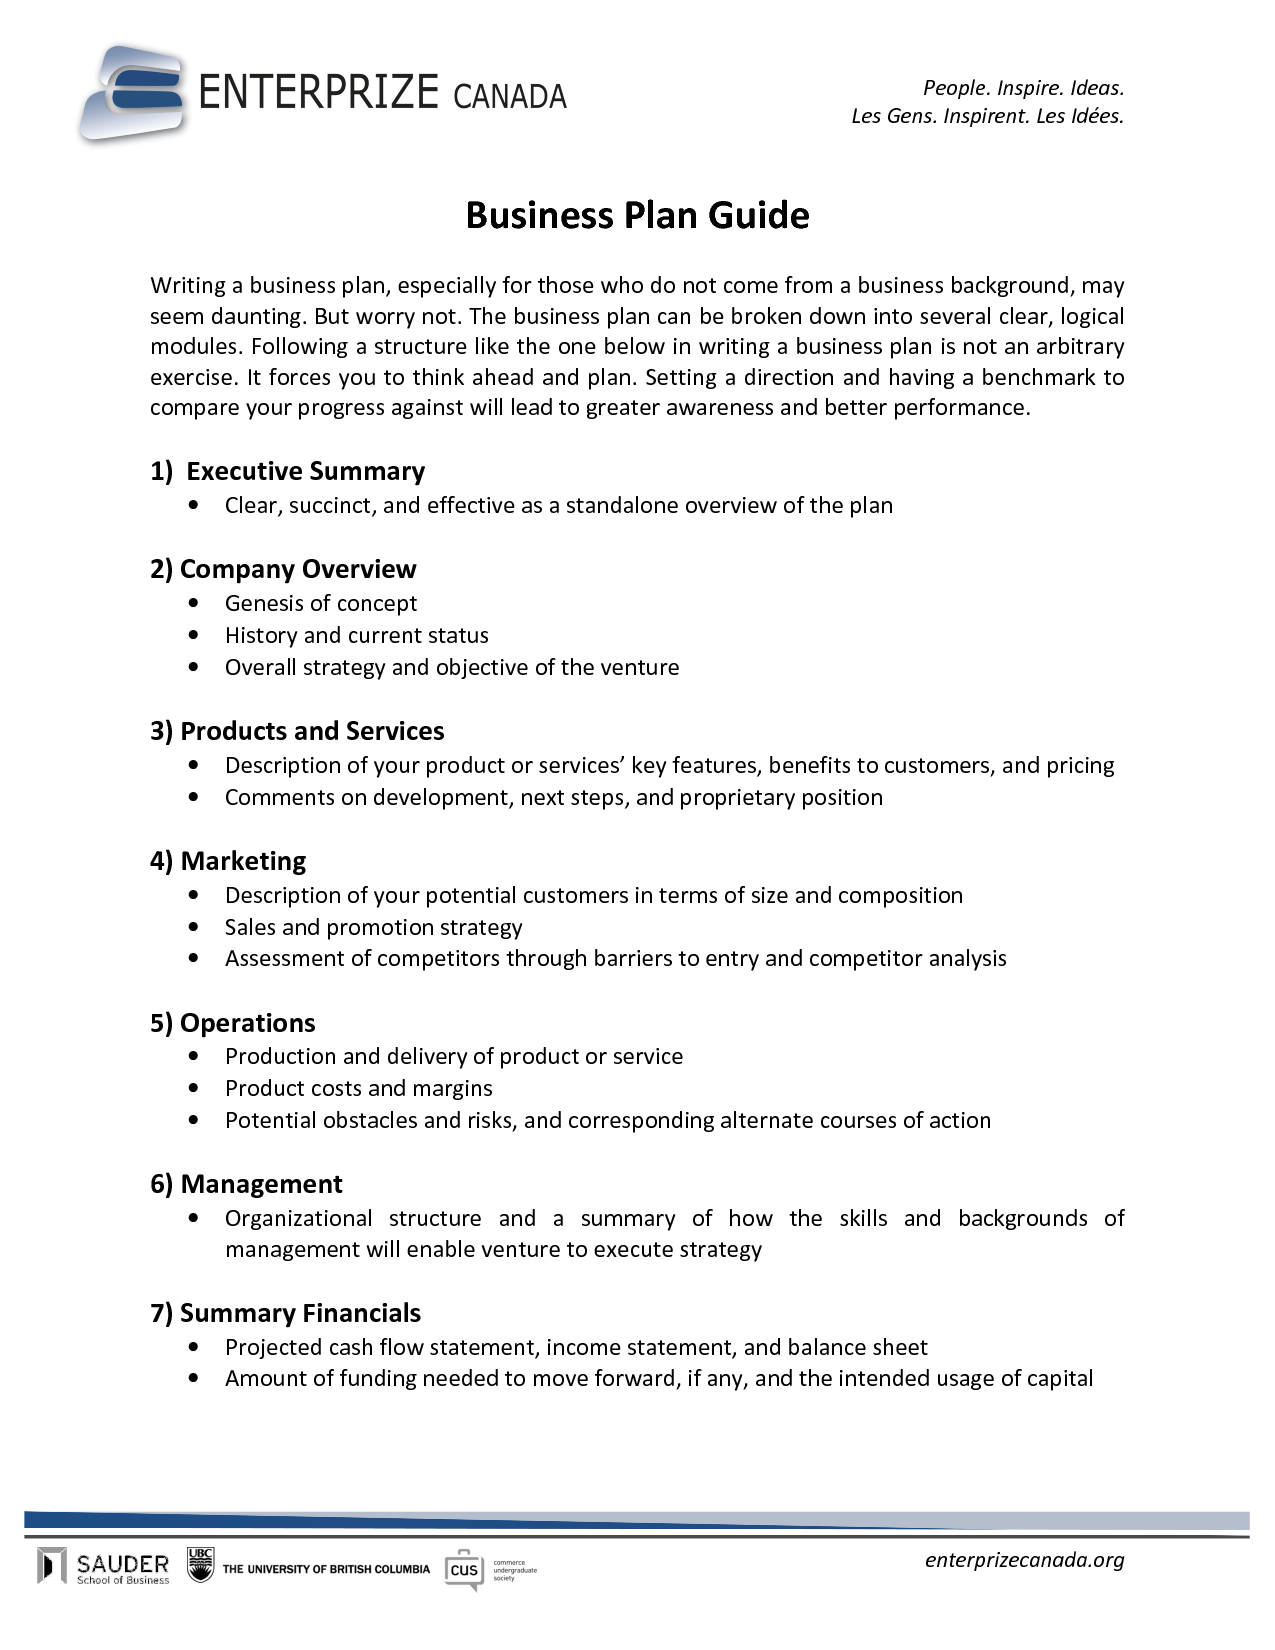 College Application Essay Help Writing Business Plans